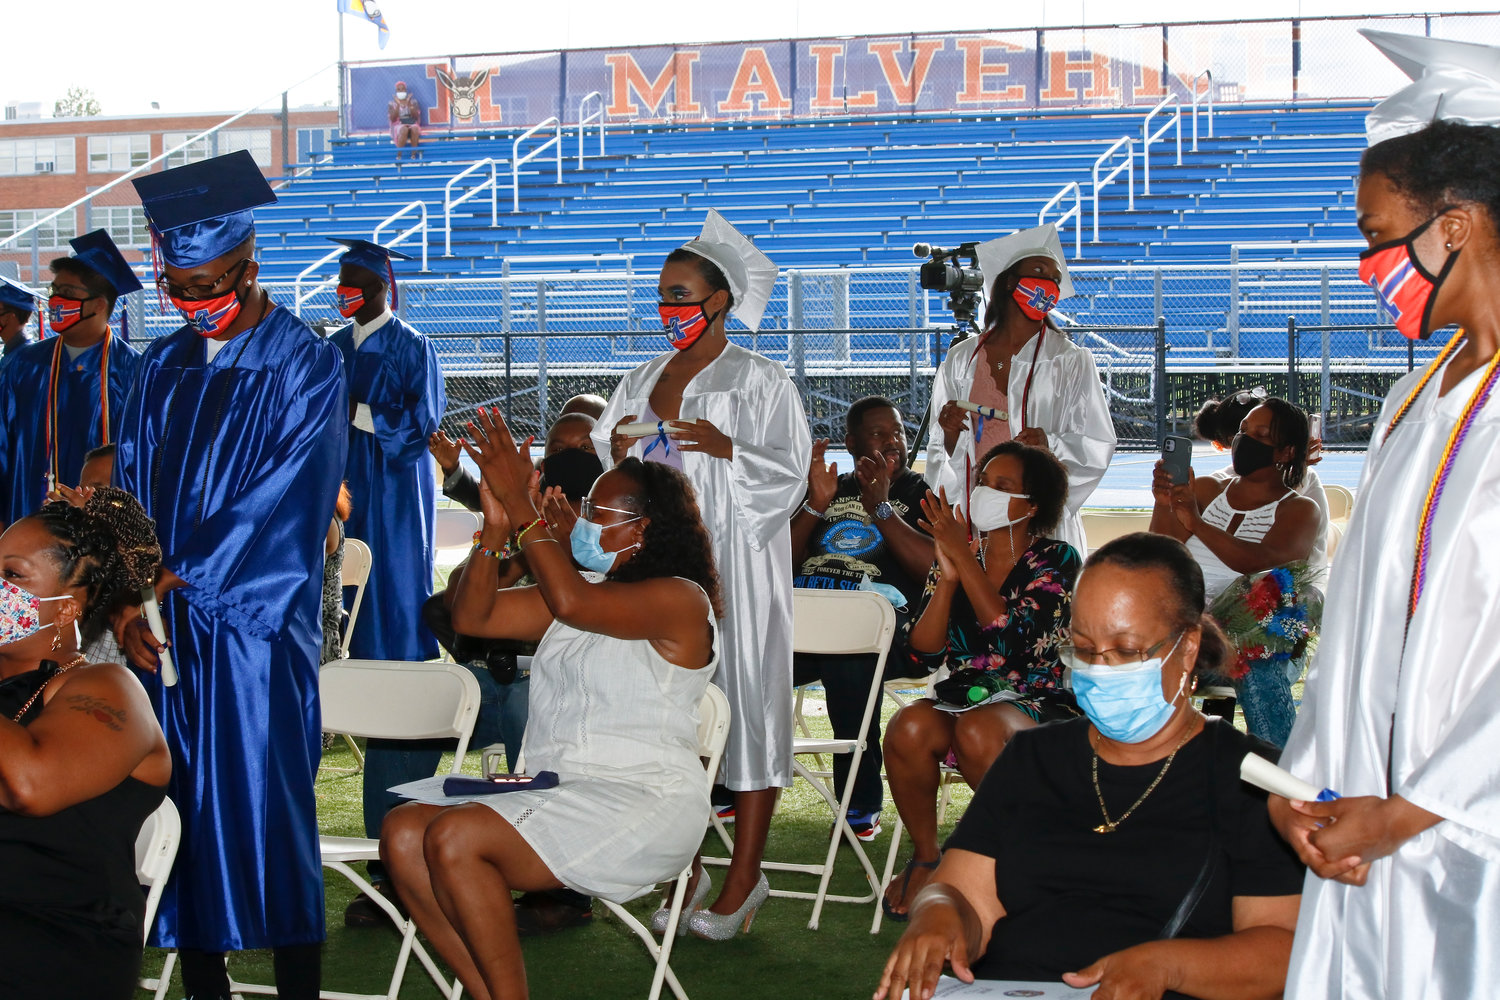 Malverne High School held its annual graduation ceremony for the class of 2020 on Aug. 7.